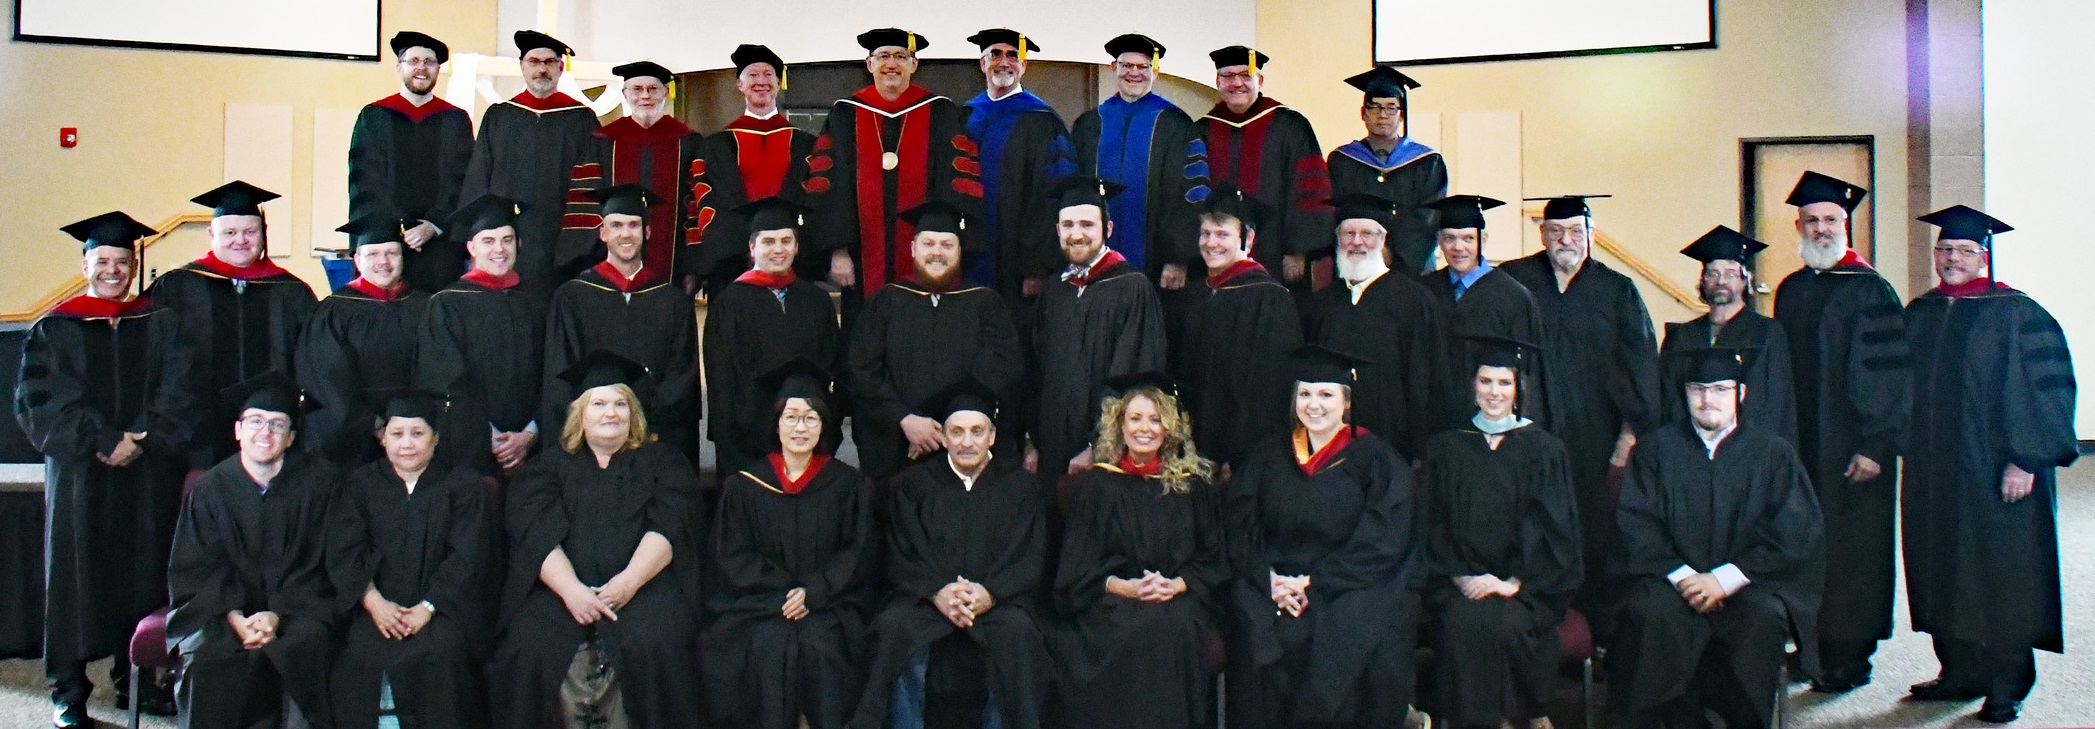 The Gateway Seminary Rocky Mountain Campus graduating class of 2018.